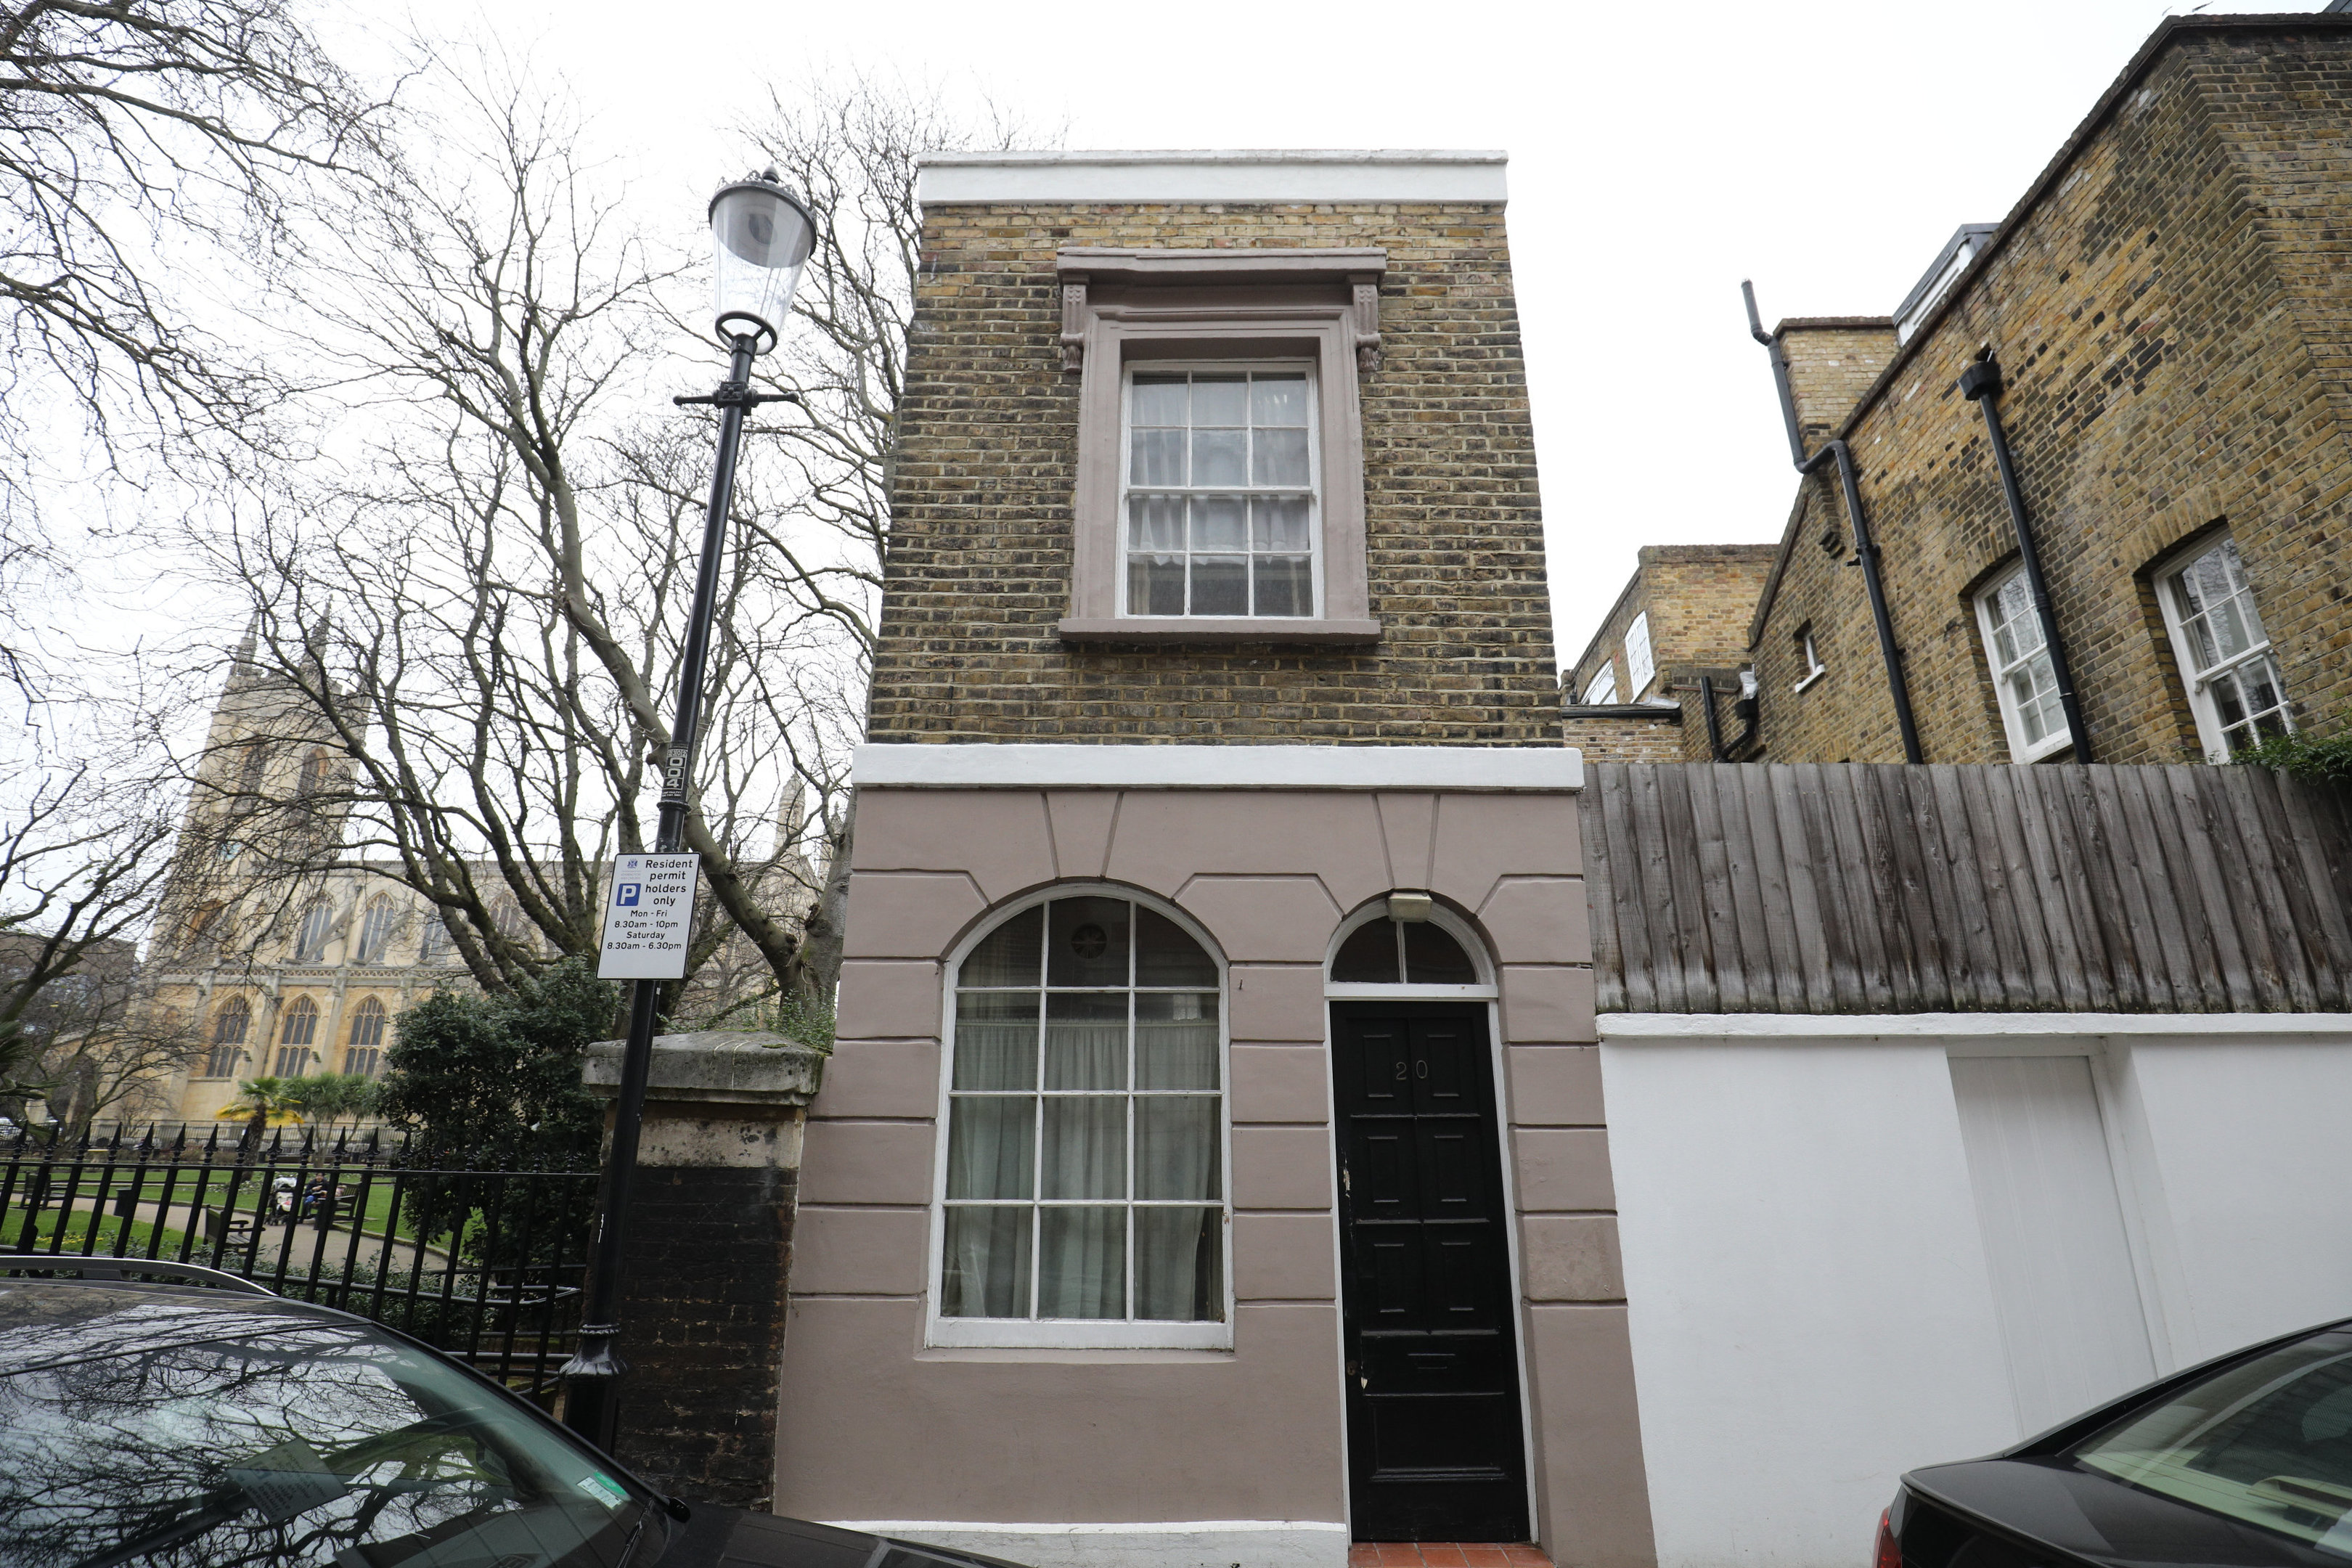 Pictured: One of central London's smallest detached homes.